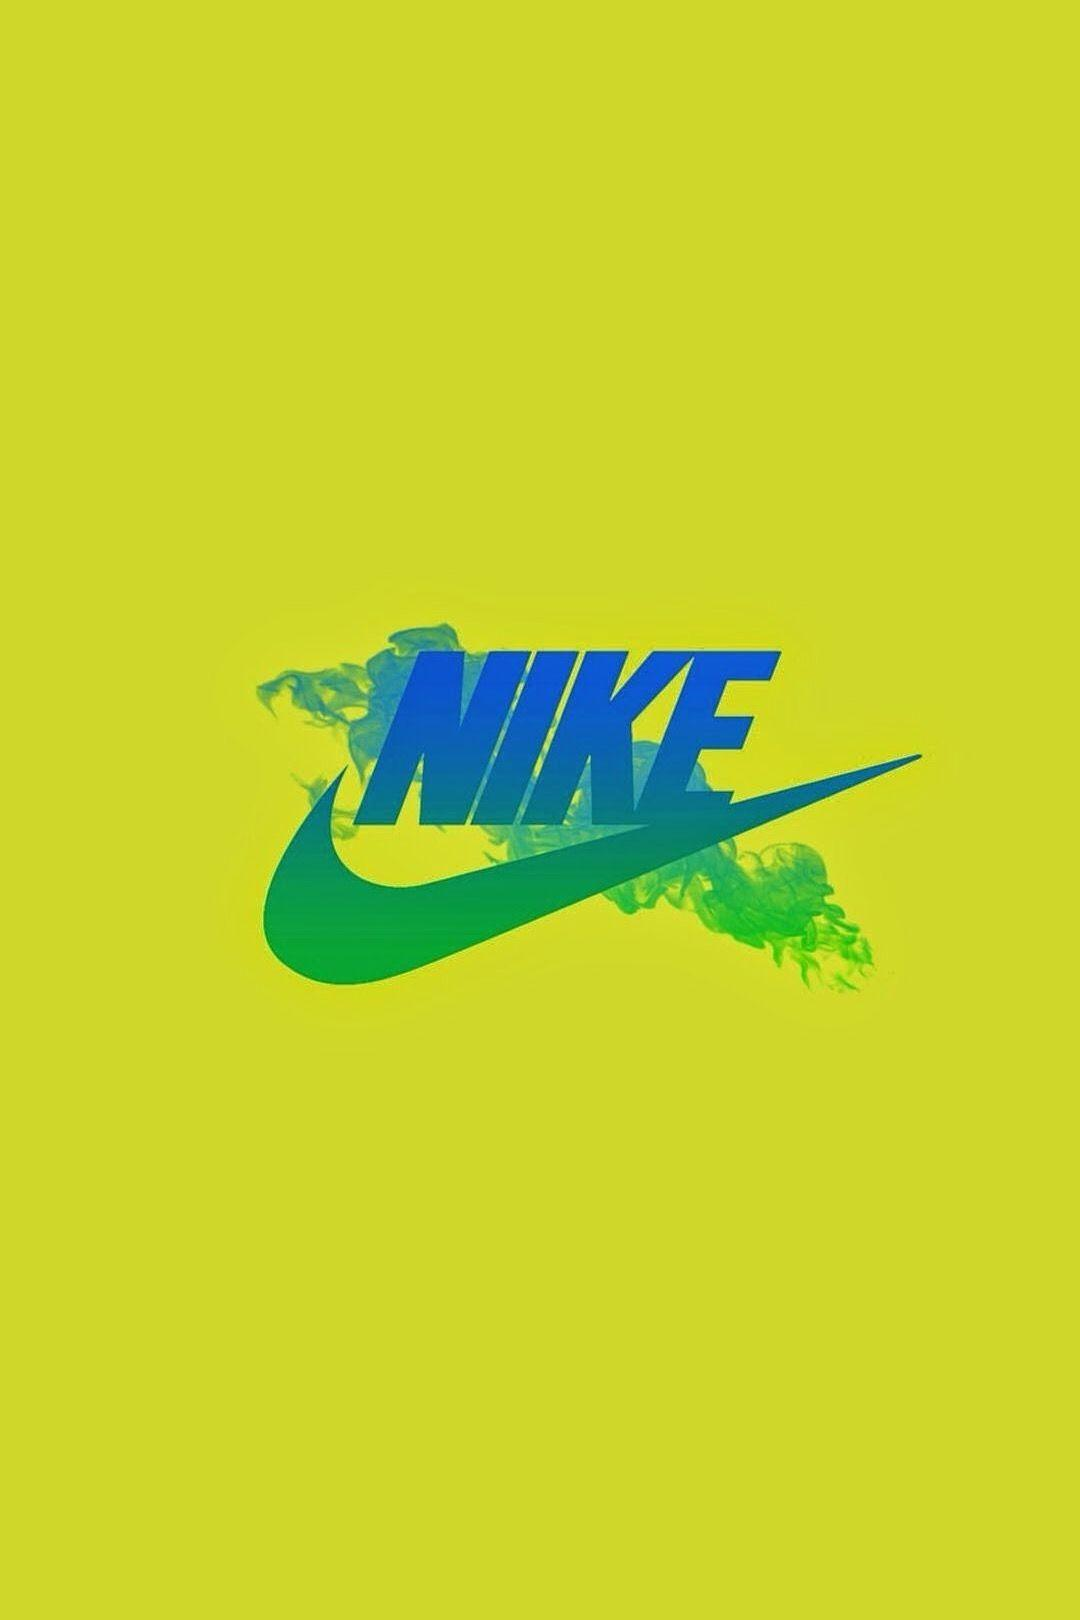 Lime Green Nike Wallpapers - Wallpaper Cave